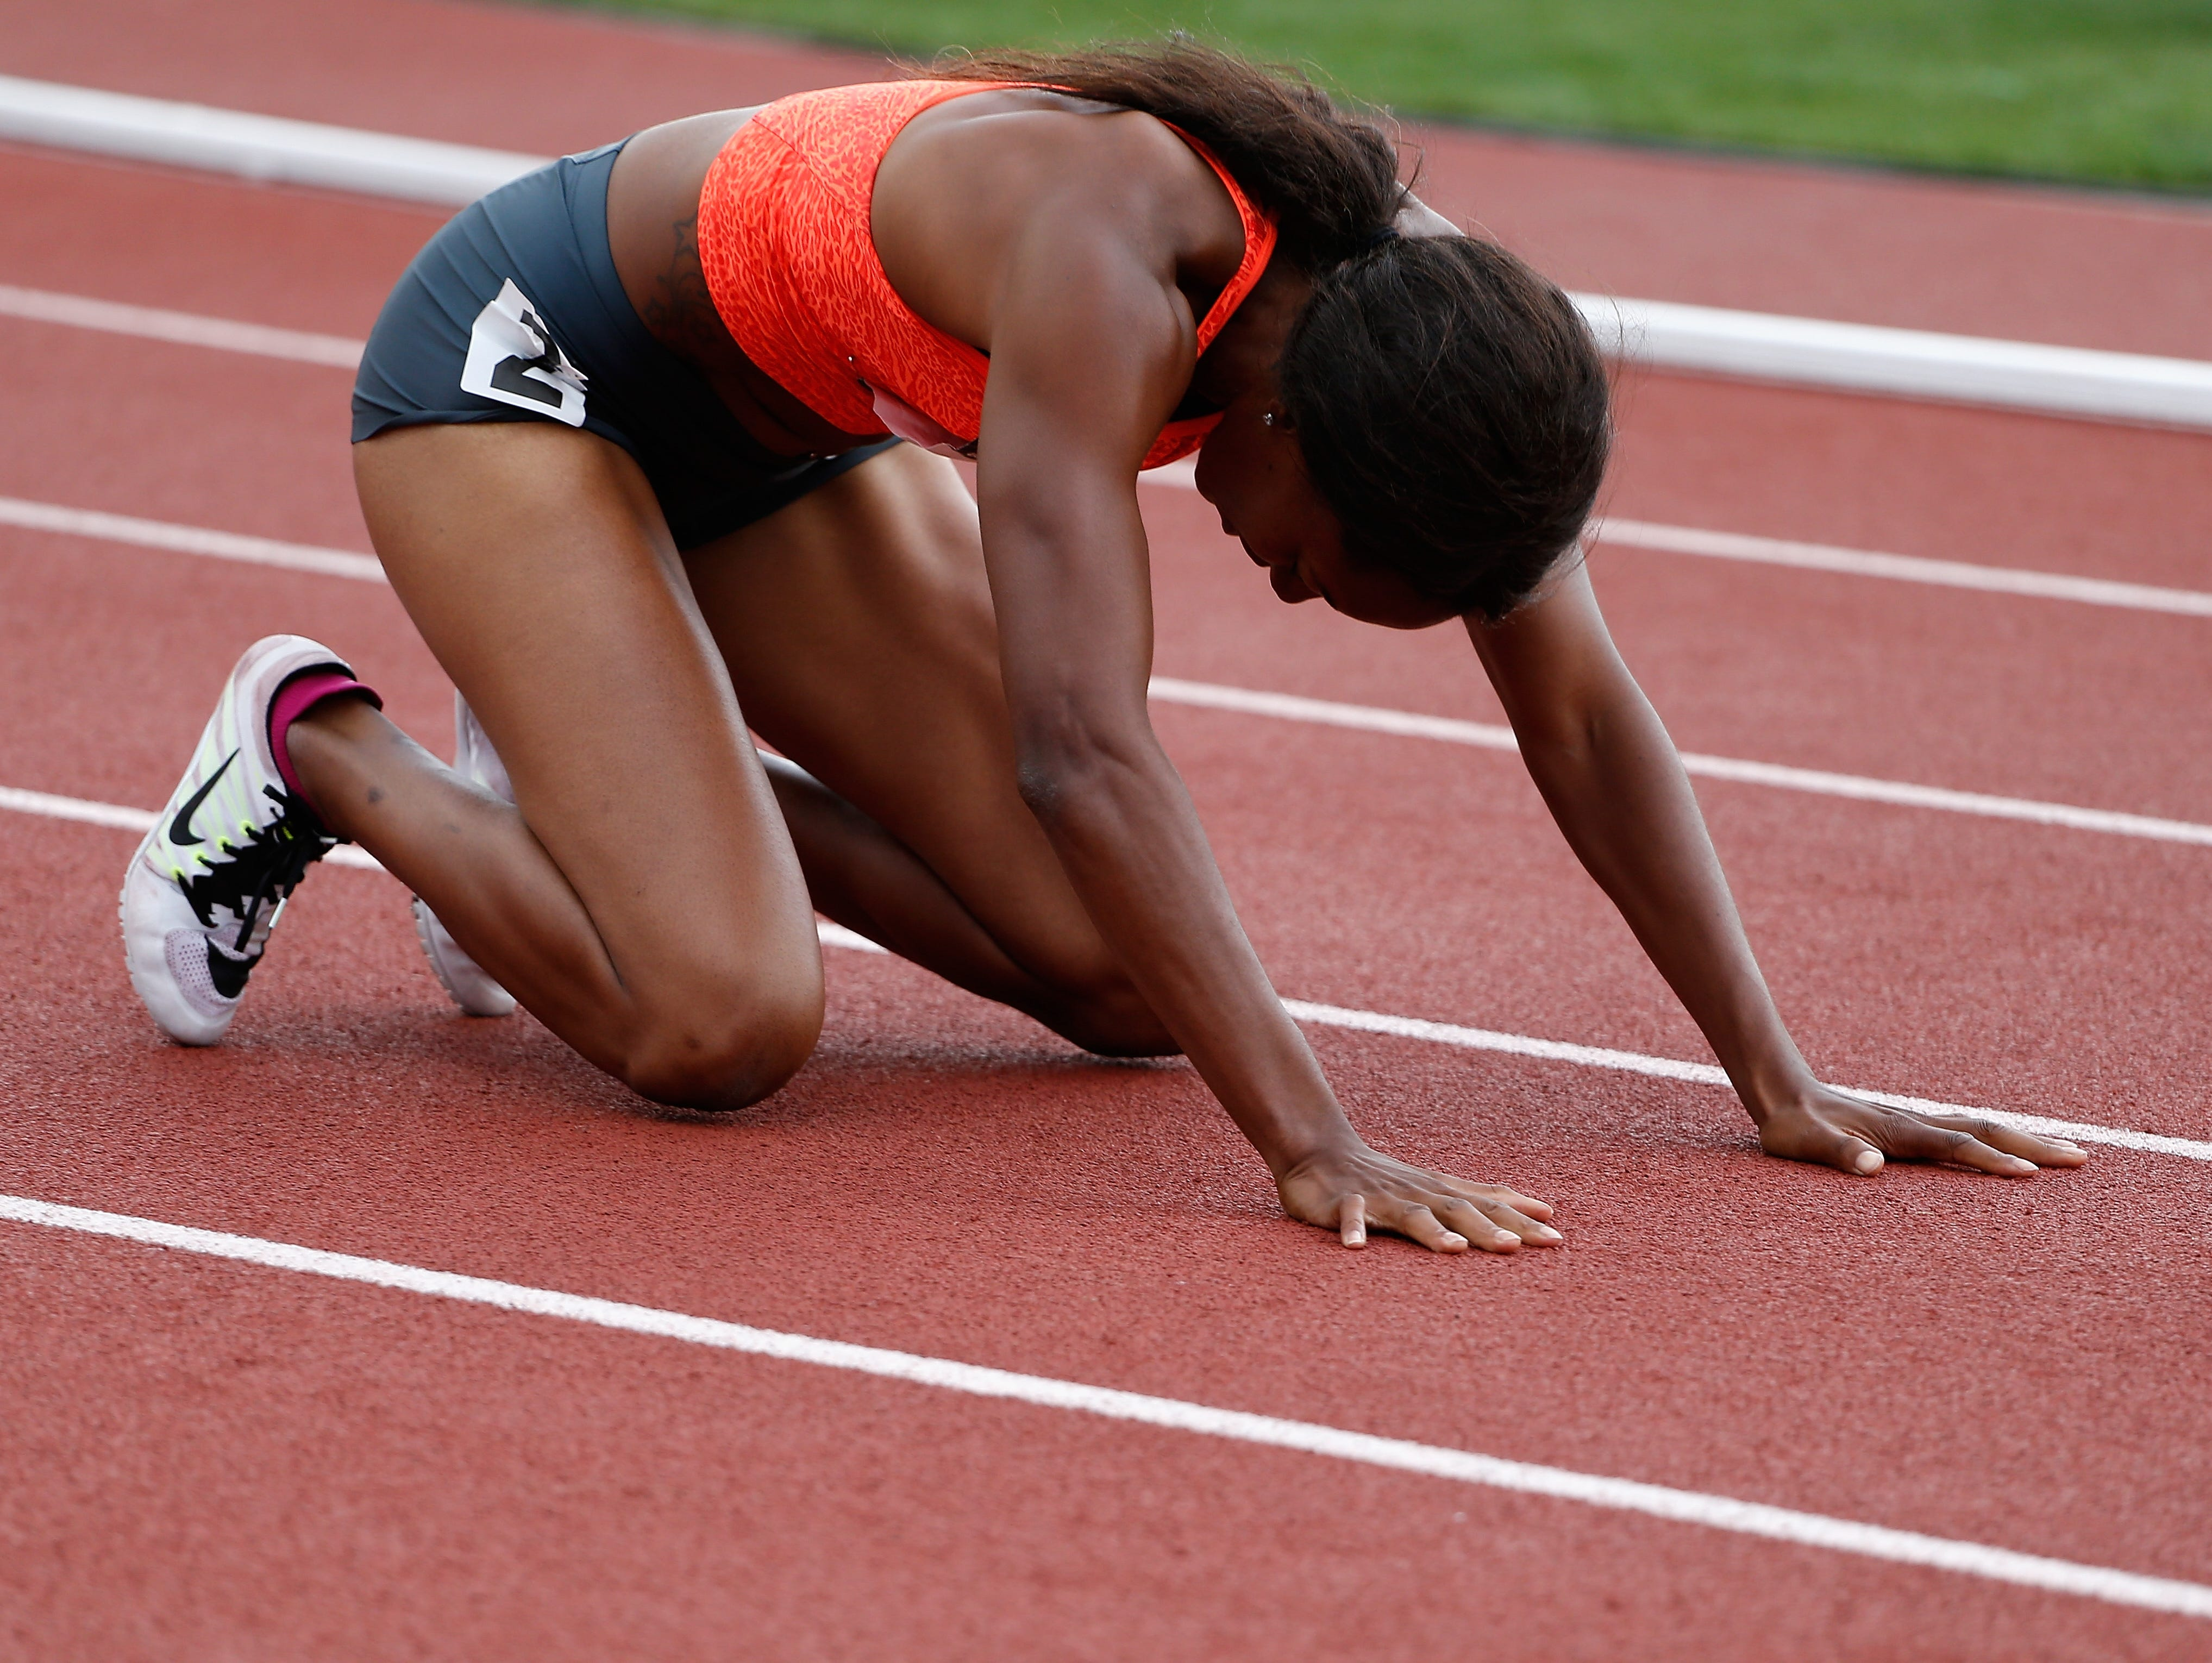 Candyce McGrone reacts after finishing in second place in the Women's 200 Meter Dash final during day four of the 2015 USA Outdoor Track & Field Championships at Hayward Field on June 28, 2015 in Eugene, Ore/